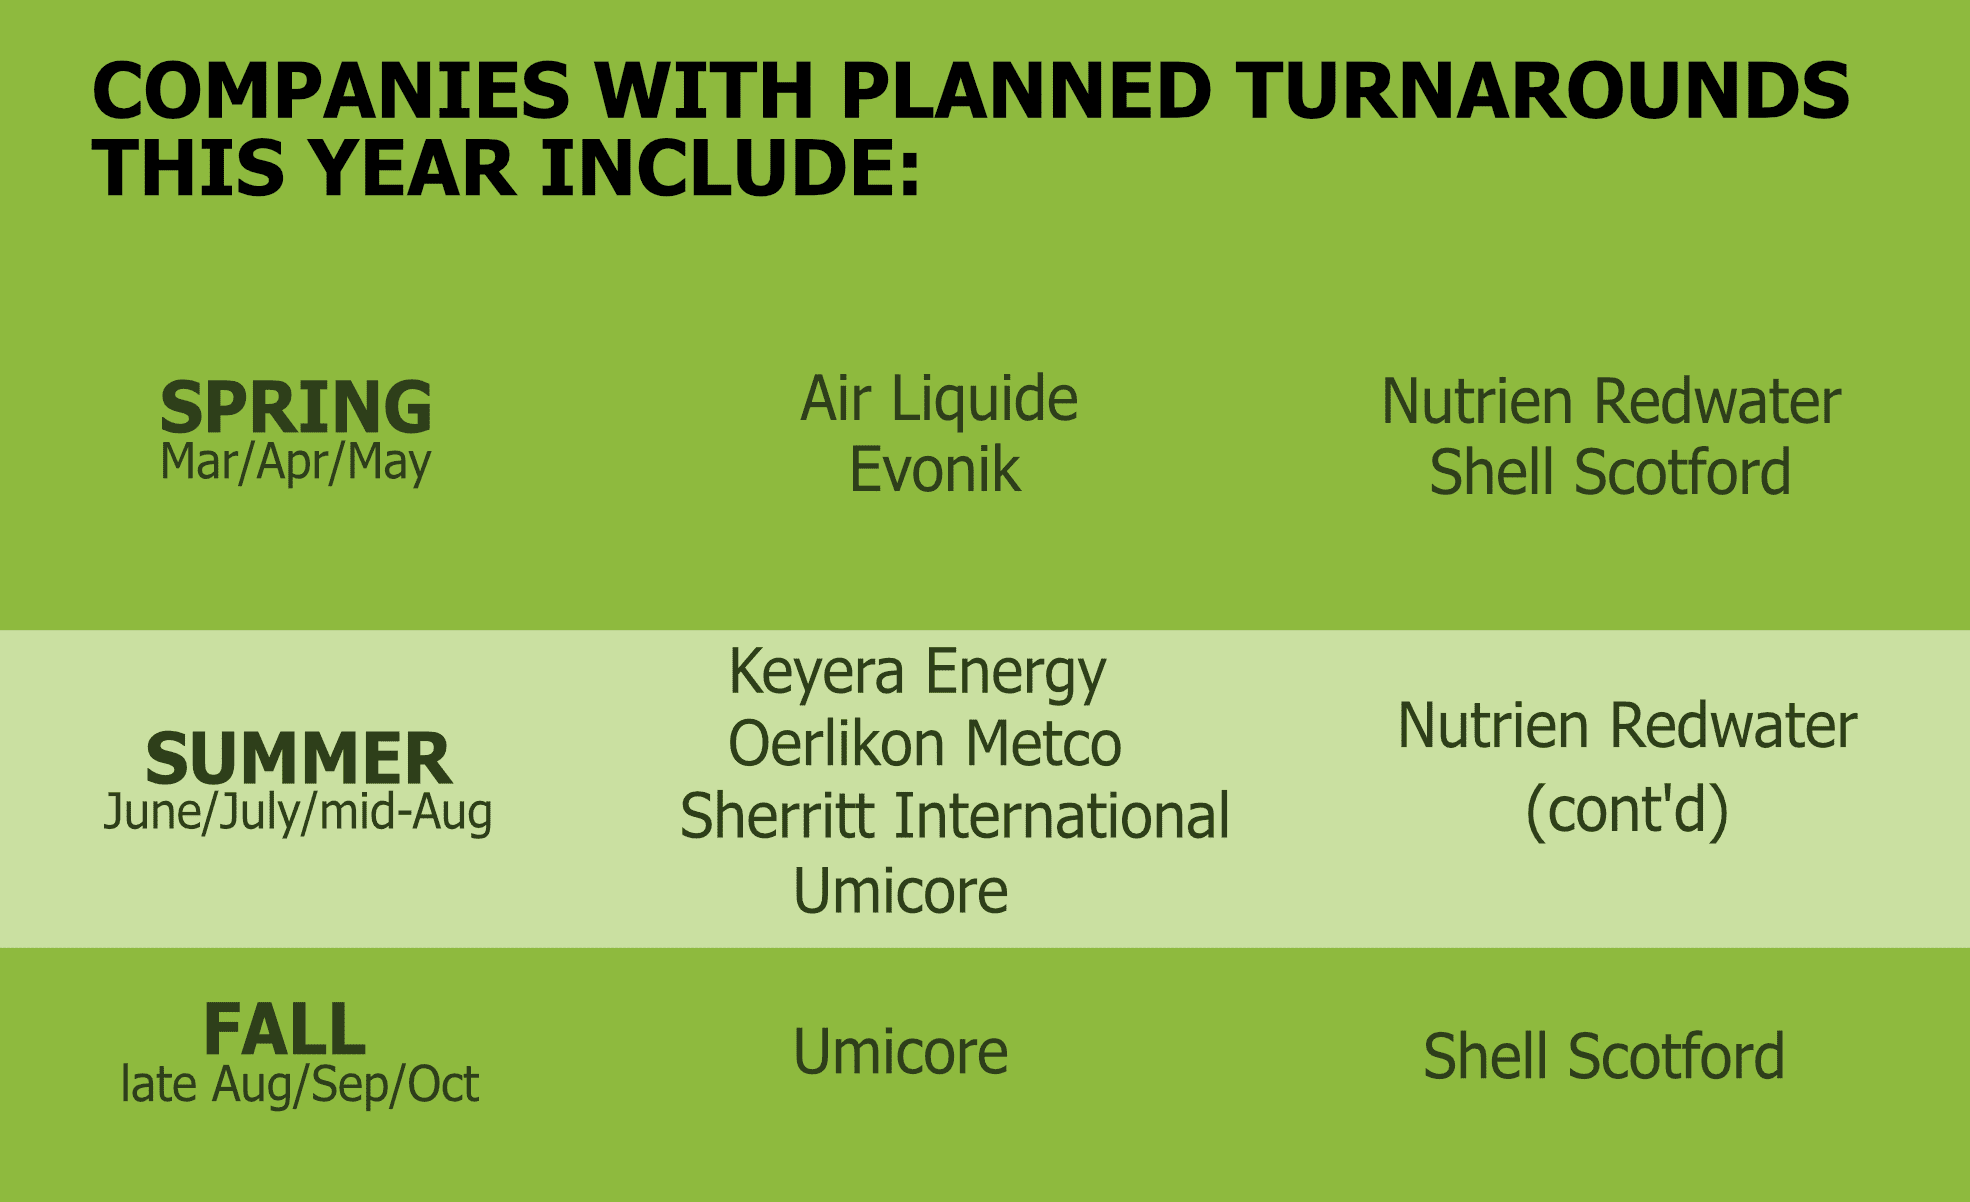 Companies with planned turnarounds this year include: